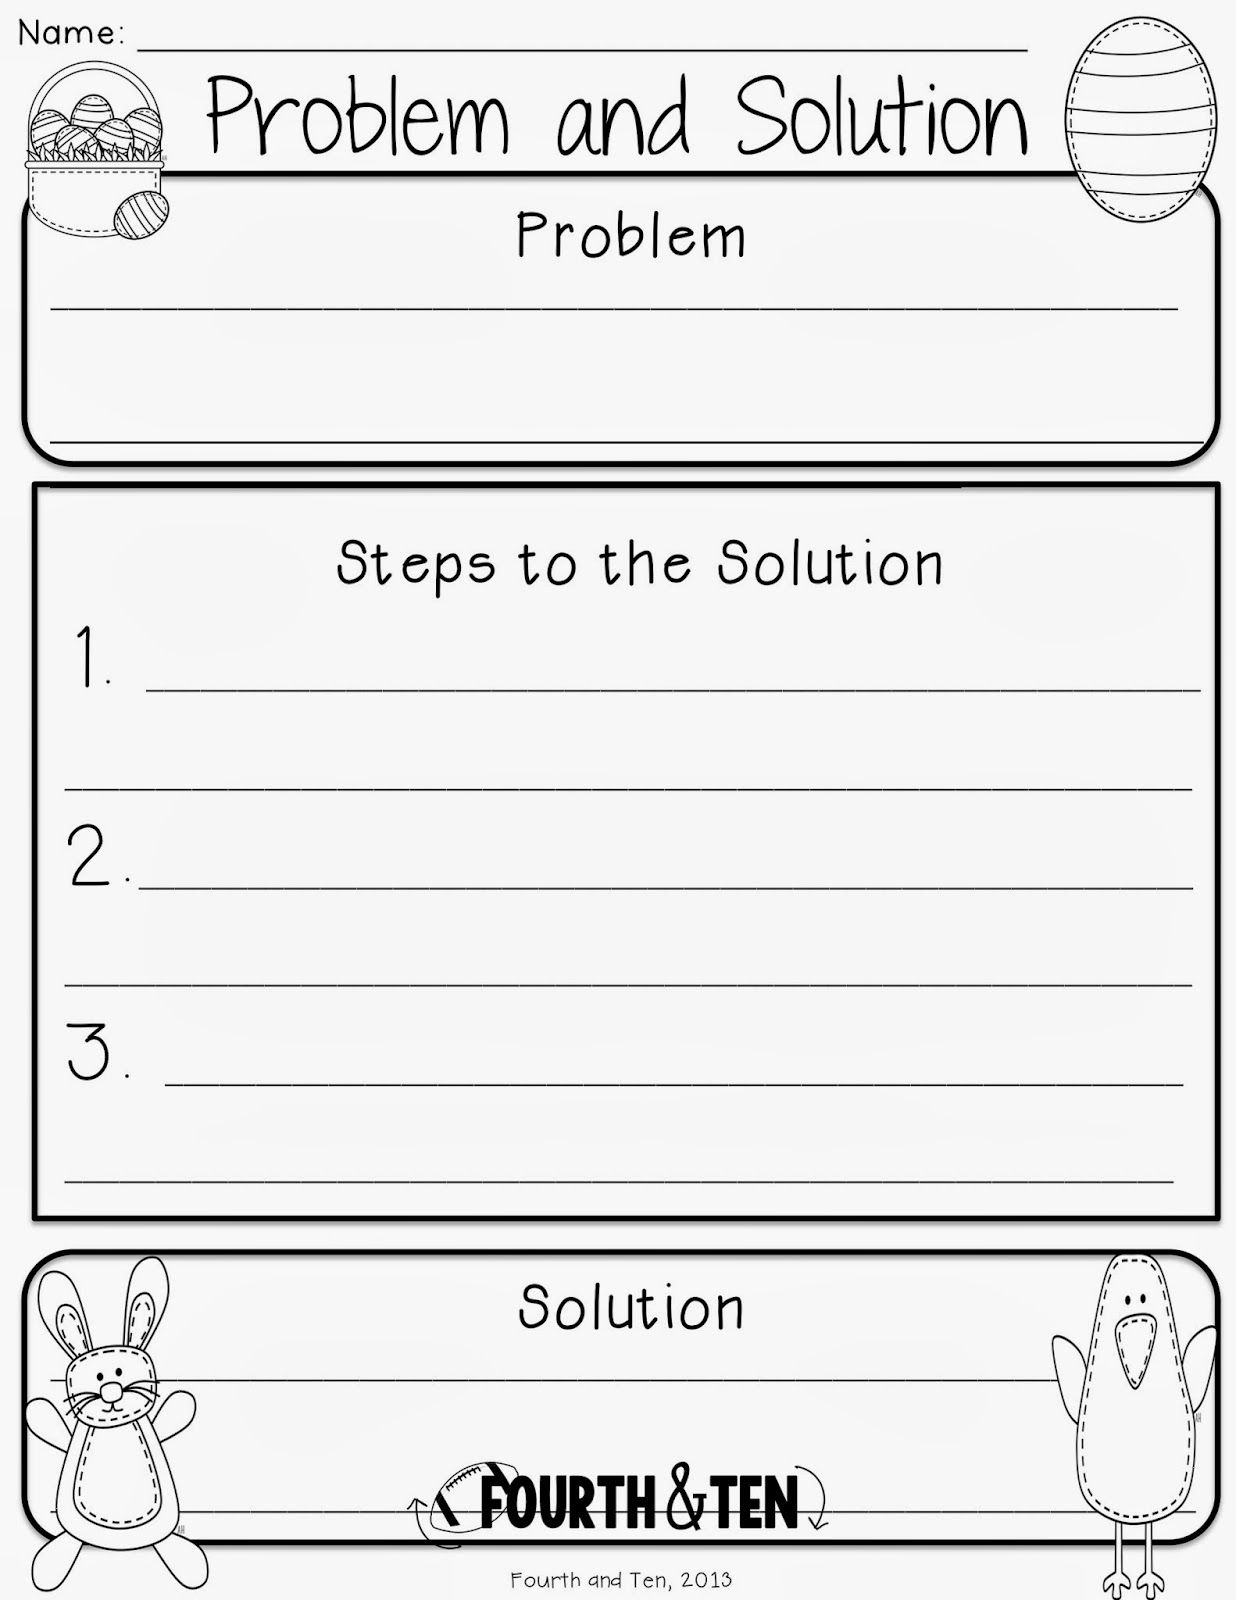 Easter Graphic Organizers - Reading/Writing - Problem Solution   Reading  worksheets [ 1600 x 1236 Pixel ]